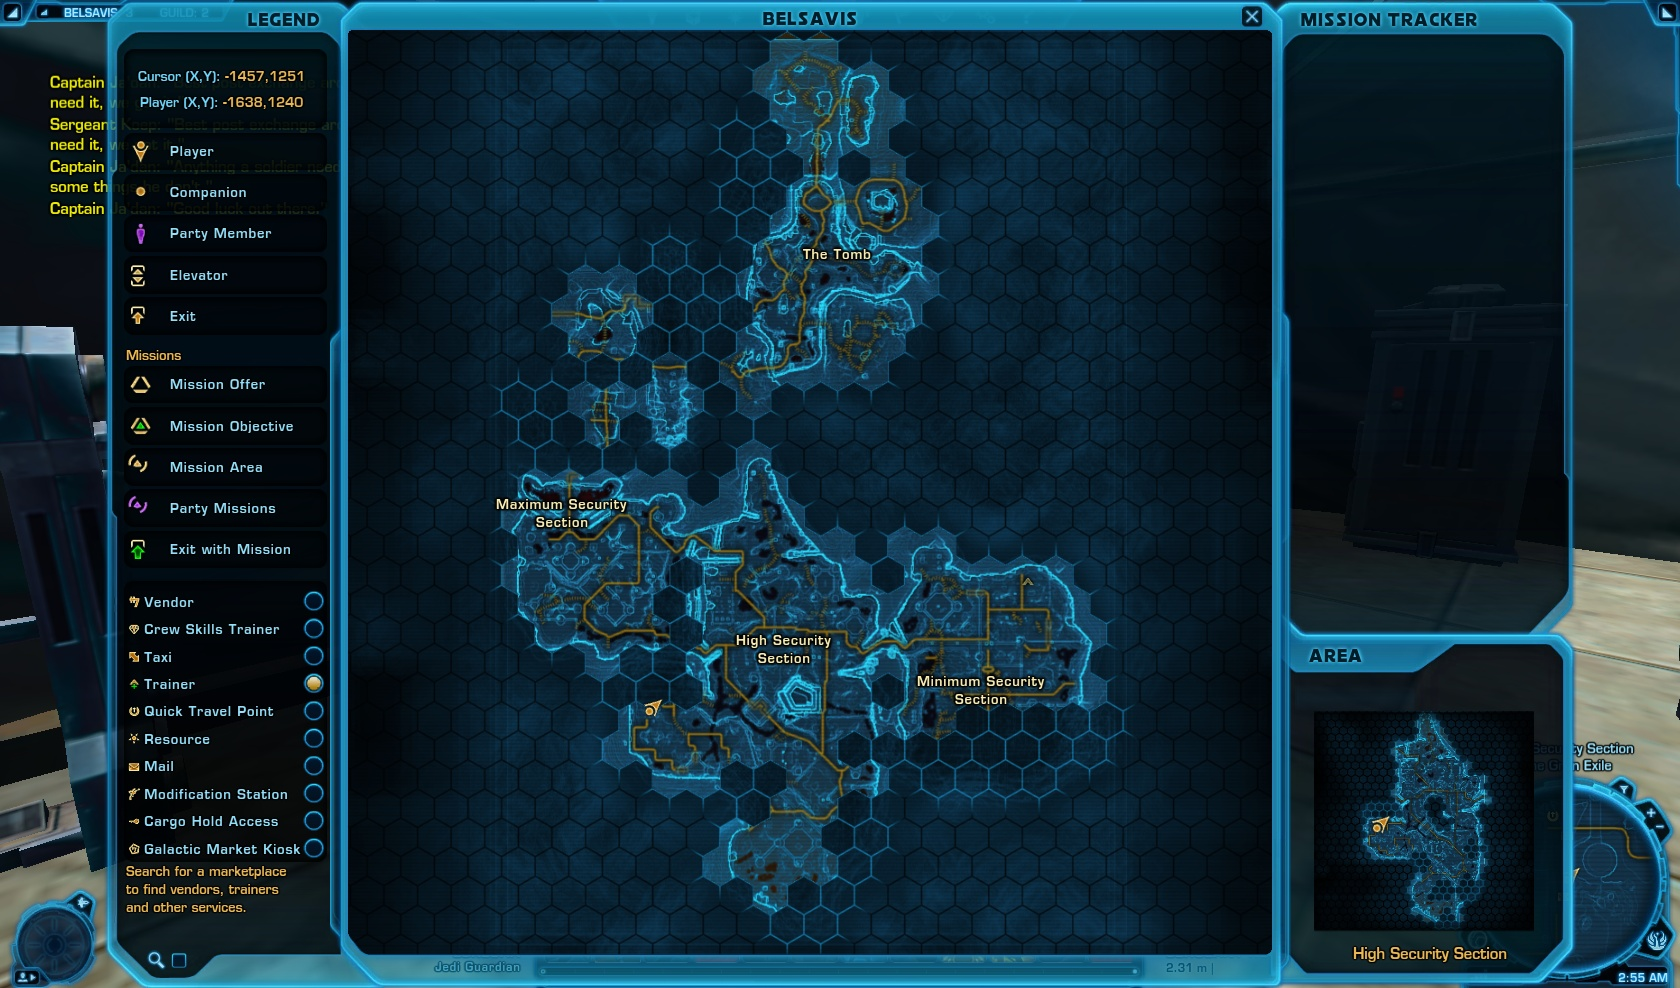 Sergeant Koep map